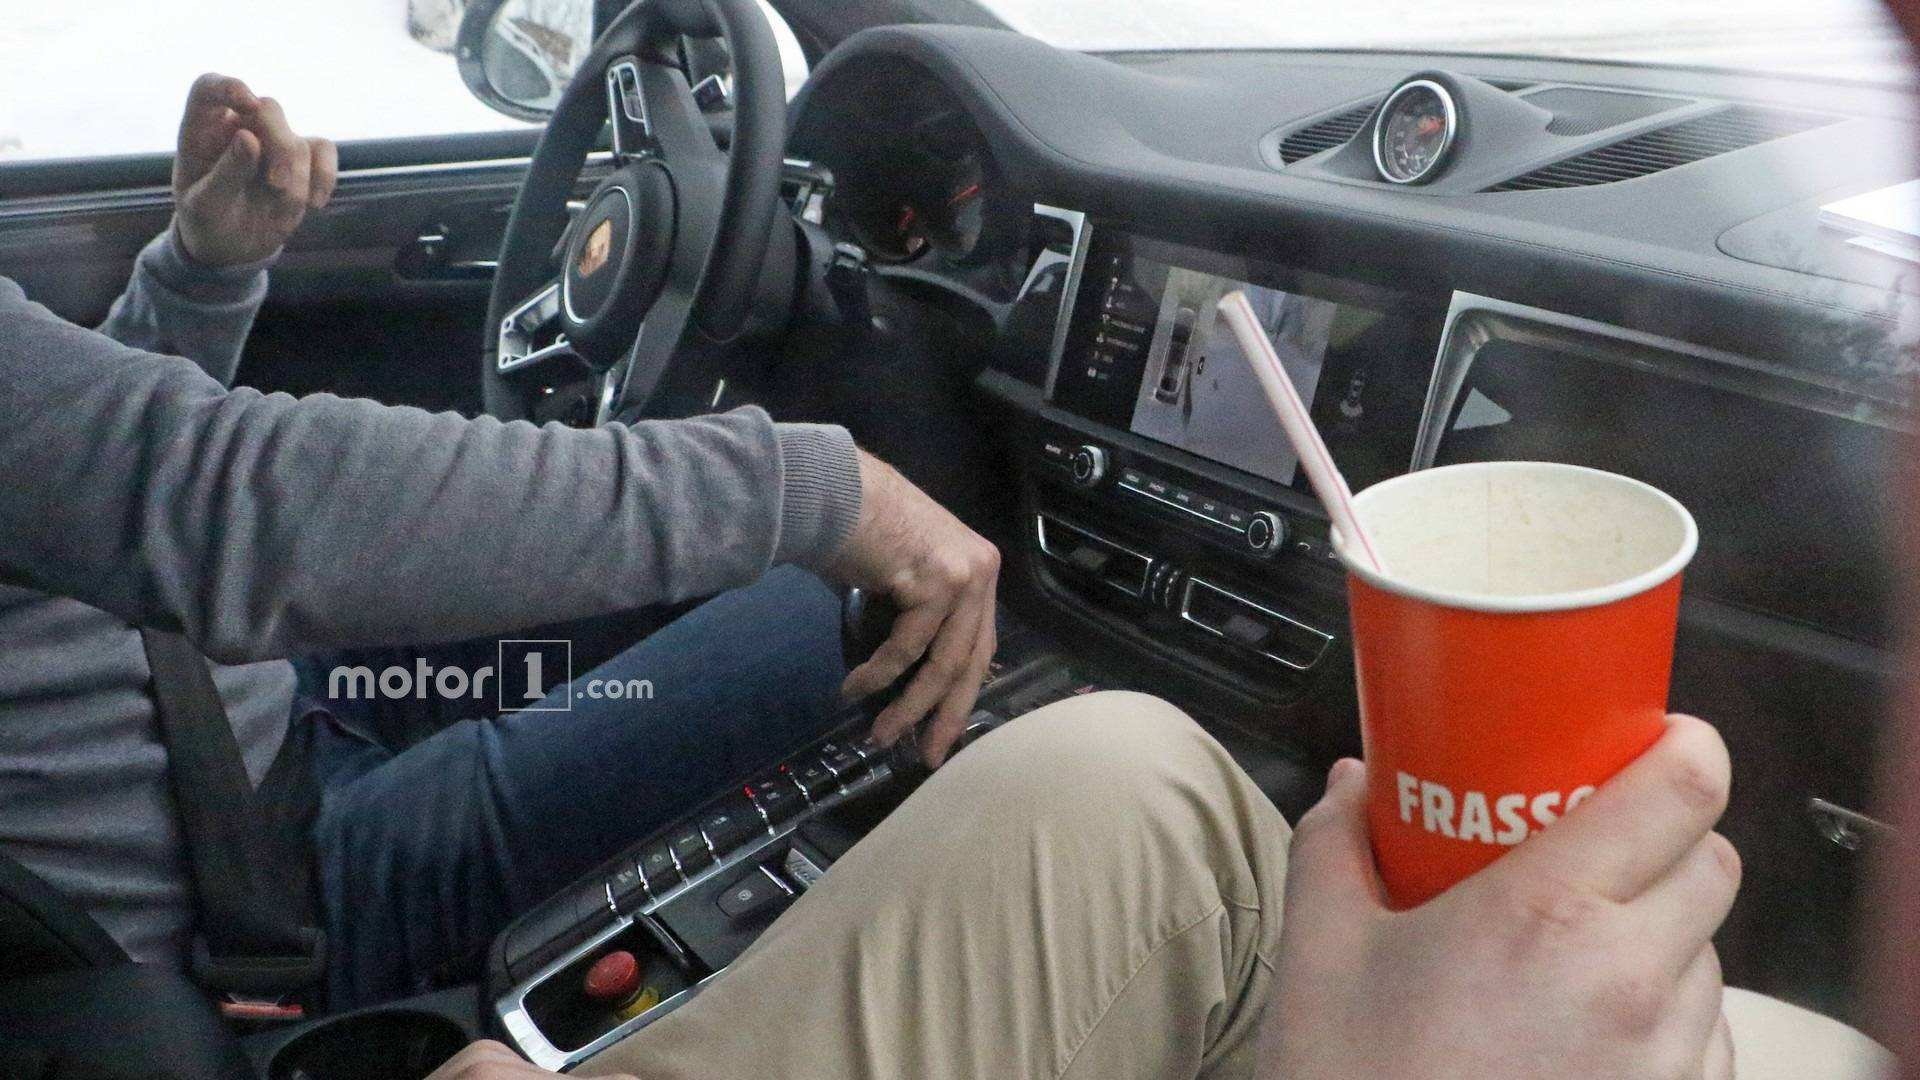 22 Gallery of 2019 Porsche Macan Interior Review with 2019 Porsche Macan Interior